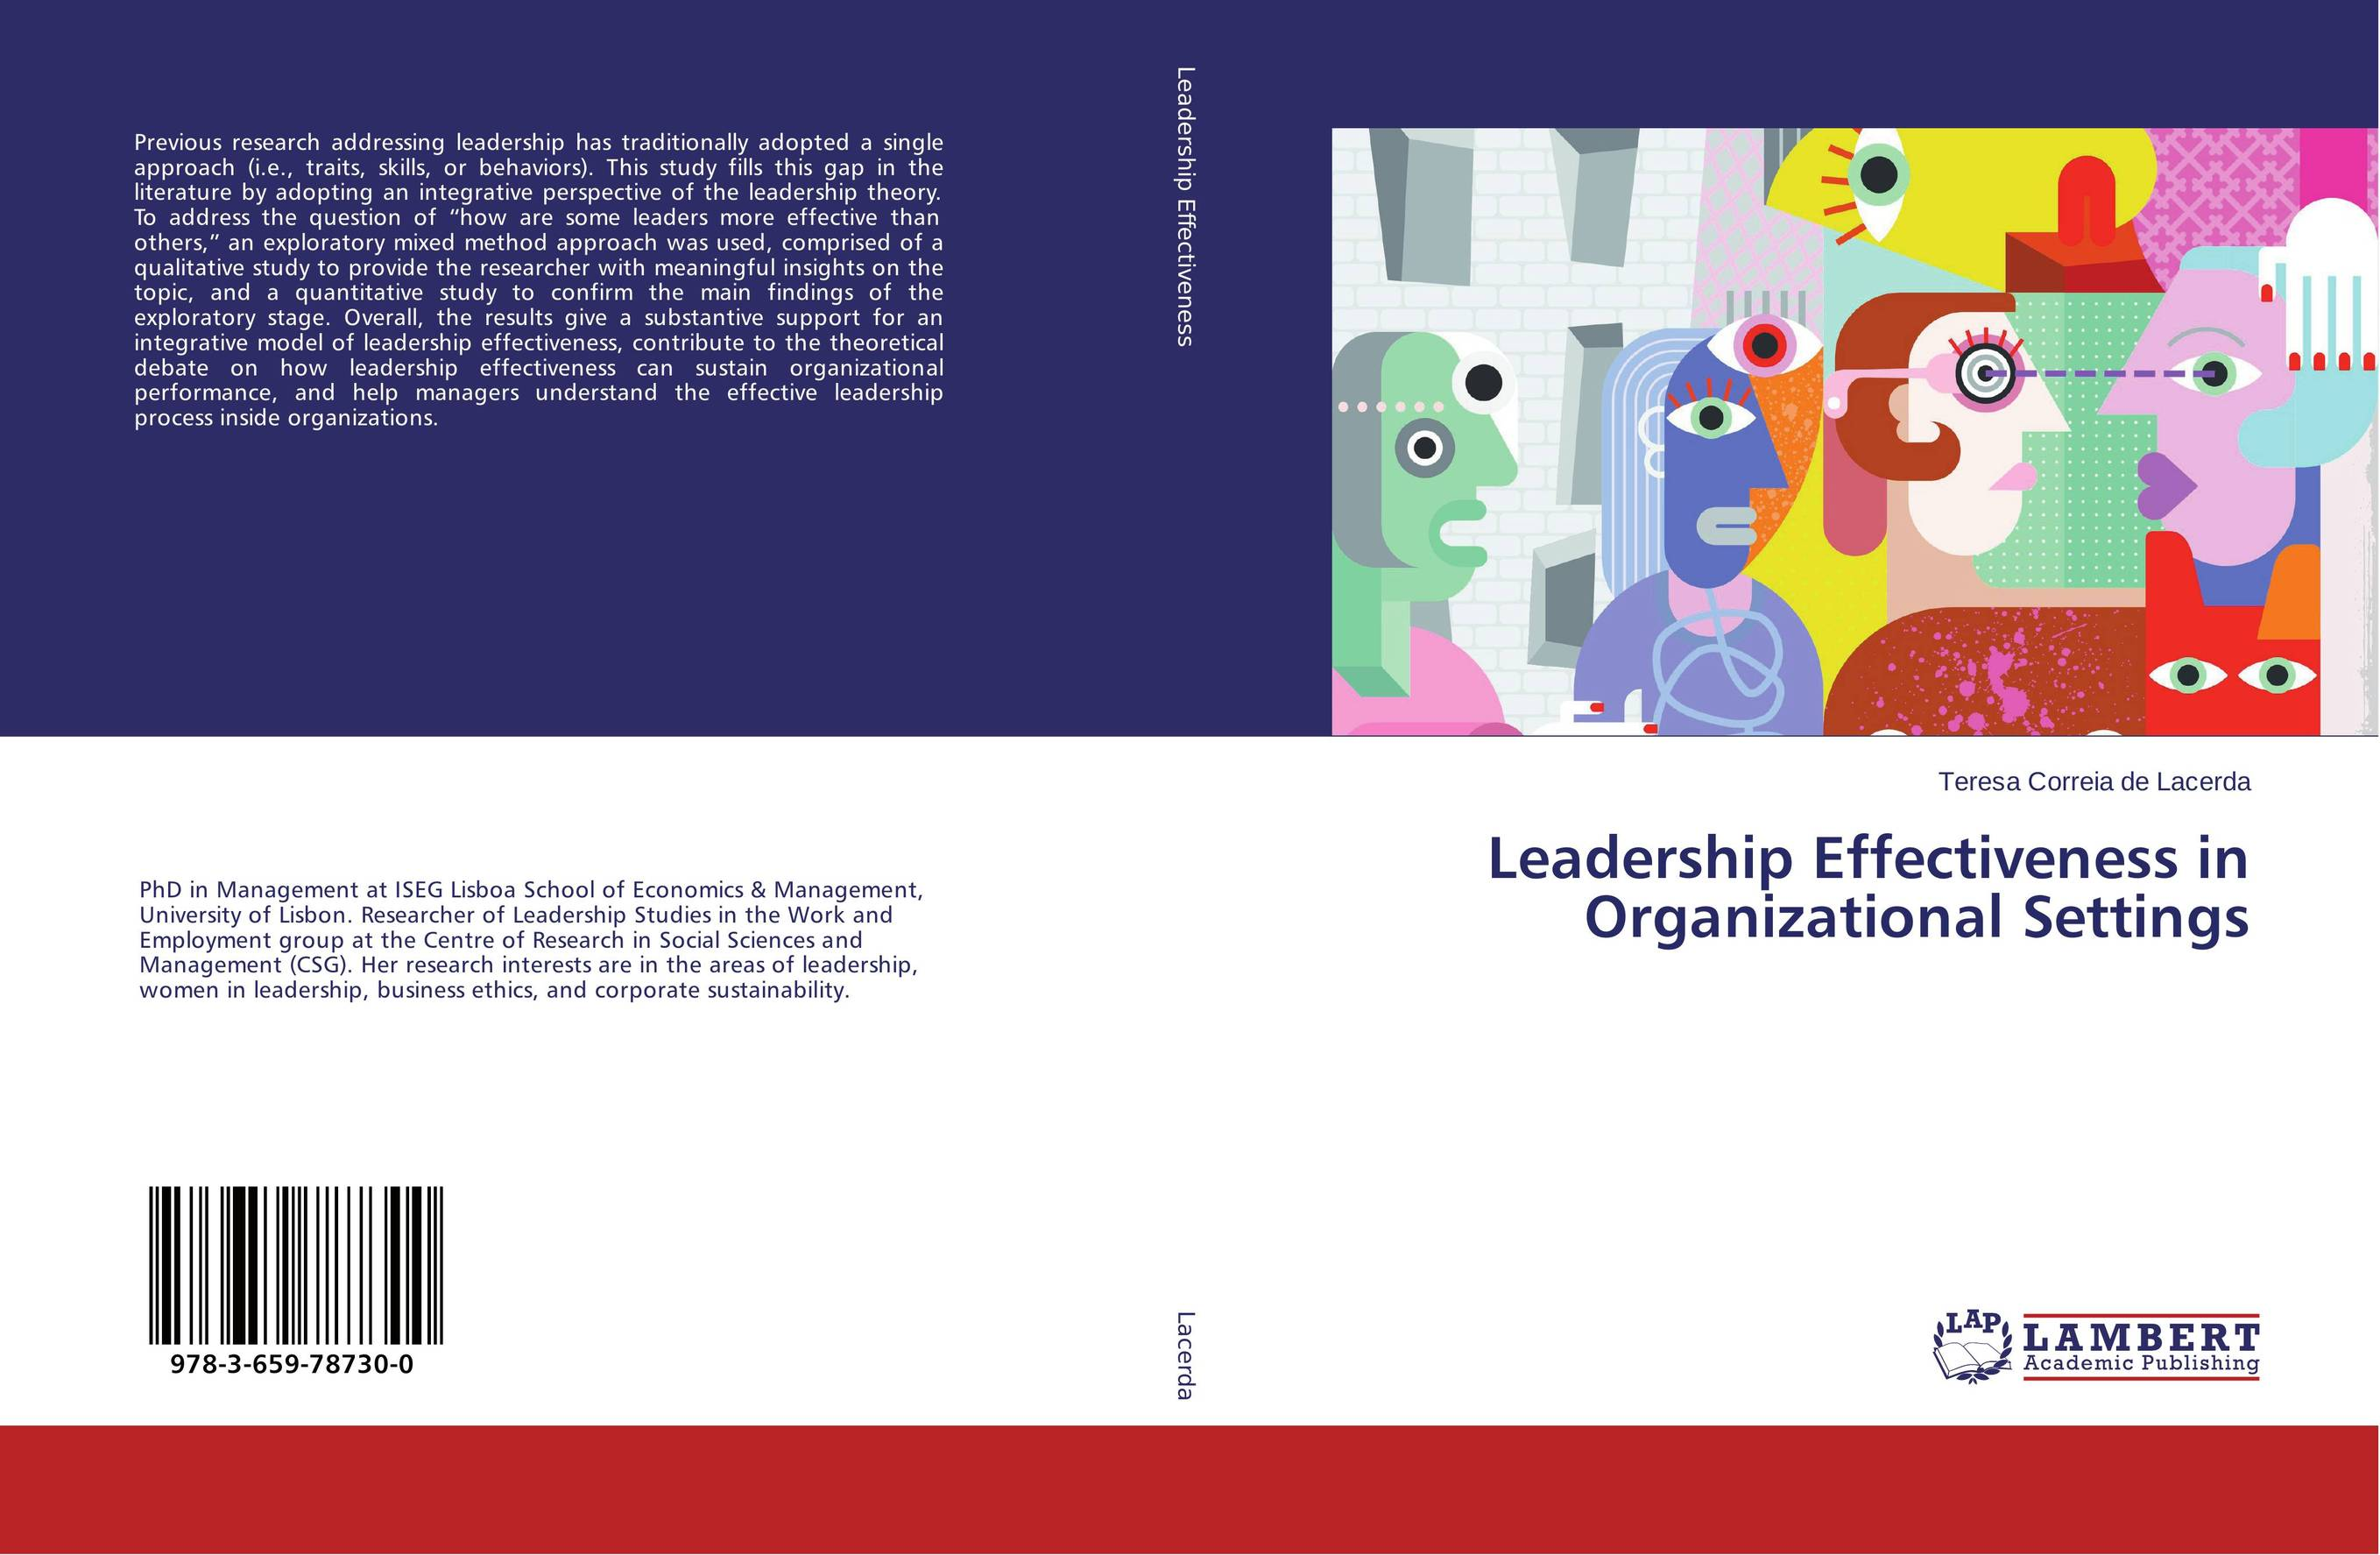 Leadership Effectiveness in Organizational Settings mastering leadership an integrated framework for breakthrough performance and extraordinary business results